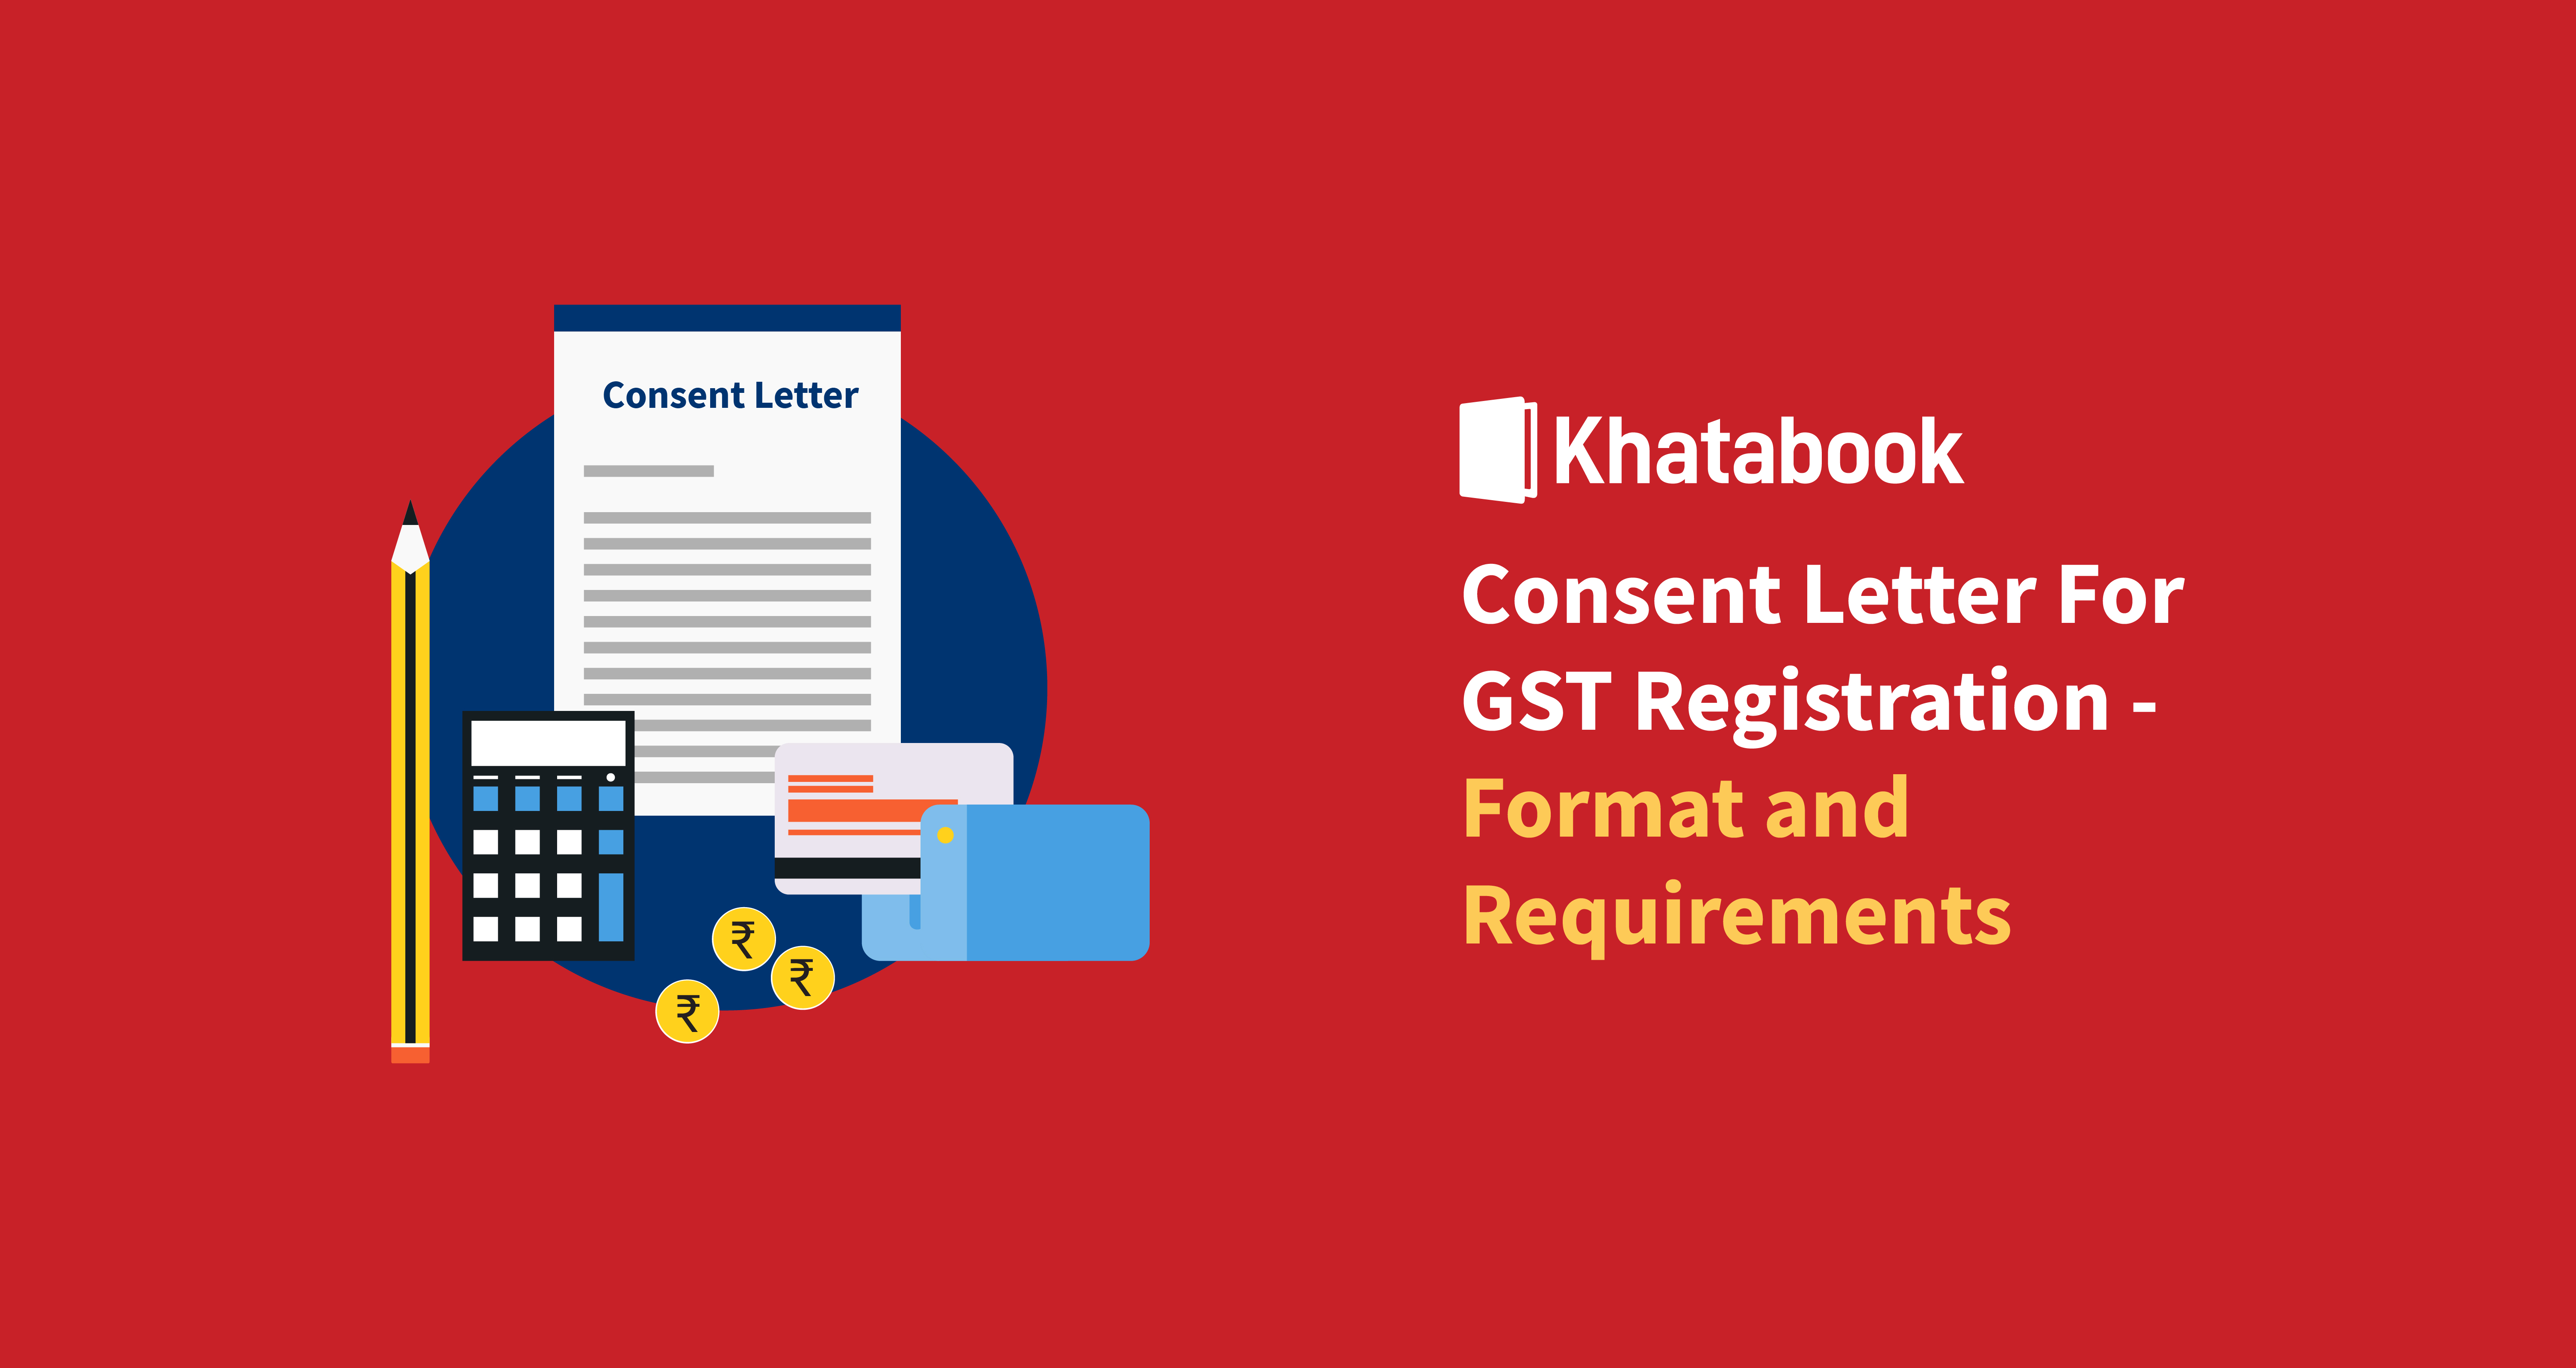 Format and Requirements of Consent Letter For GST Registration